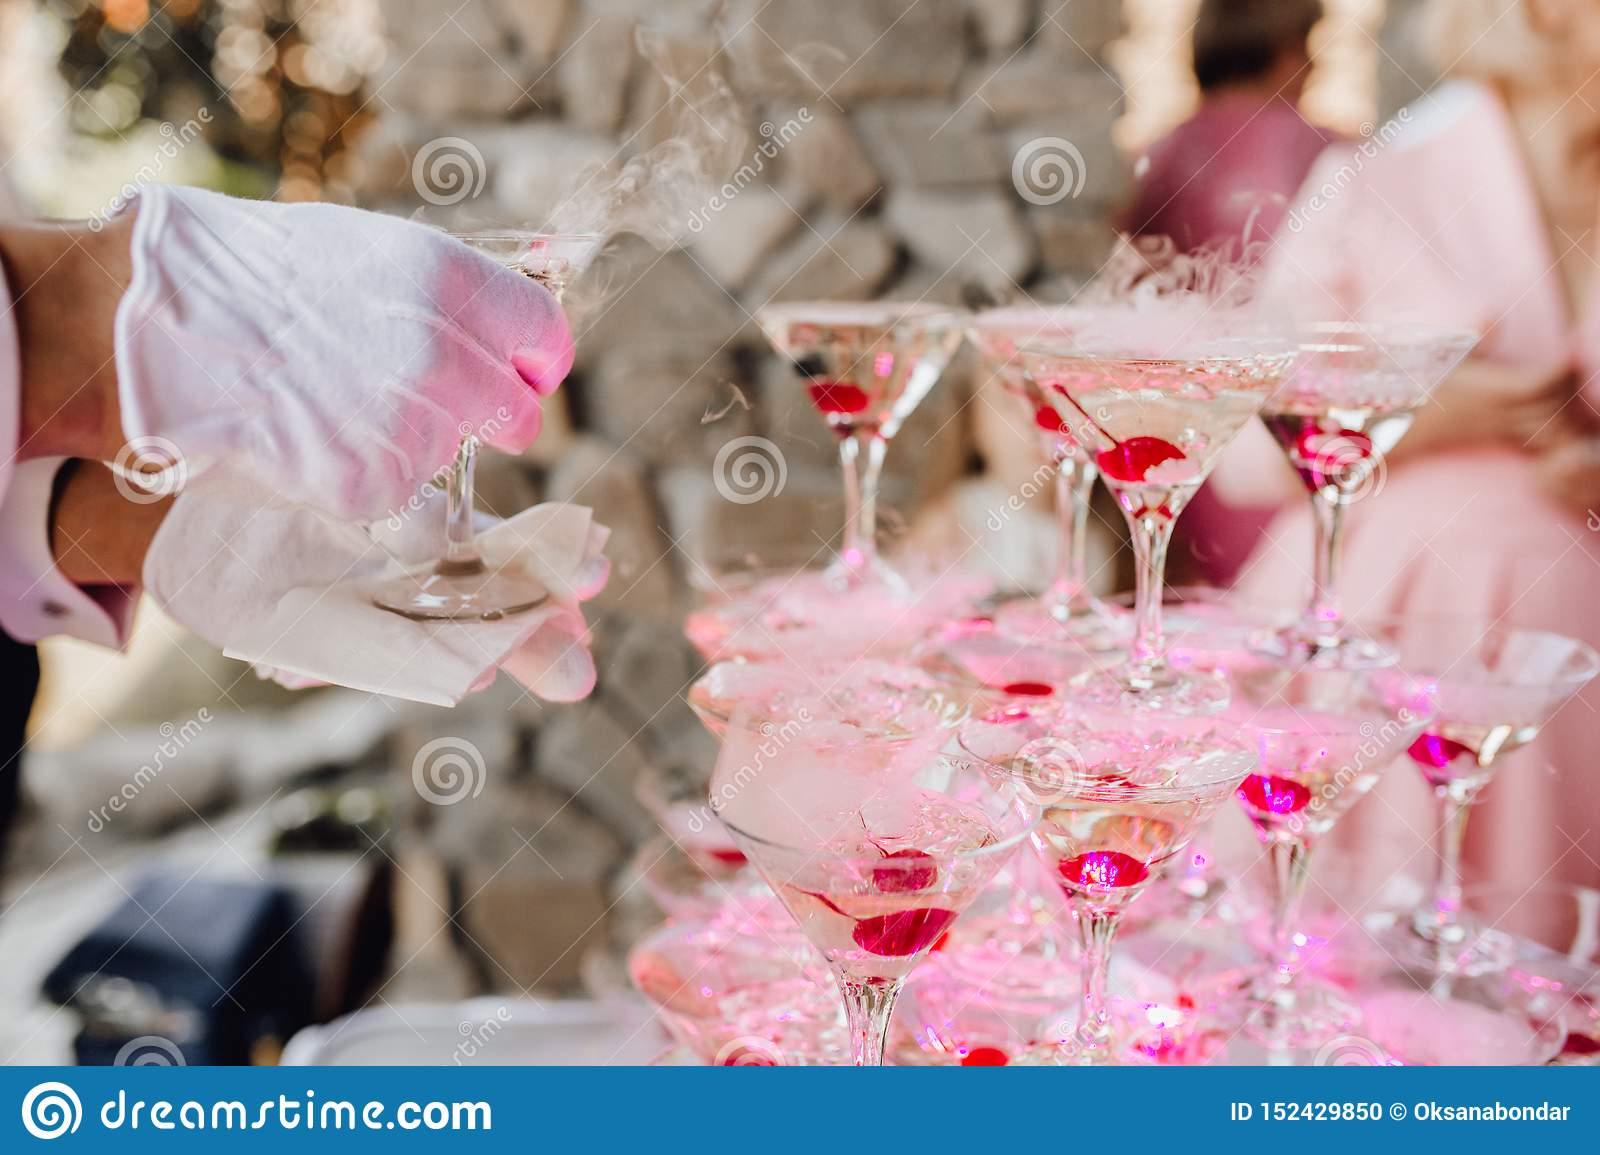 Hand in Glove put Champagne Glass Pyramid Catering